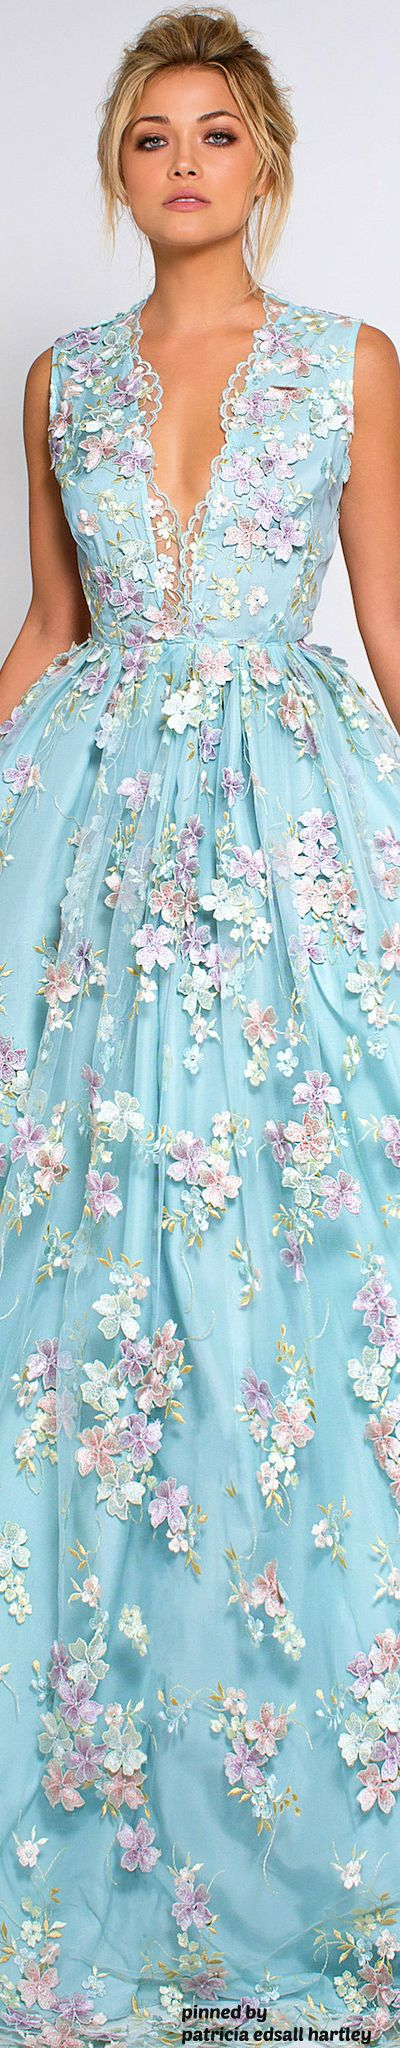 Lurelly jaglady prom dresses pinterest girls gowns and prom